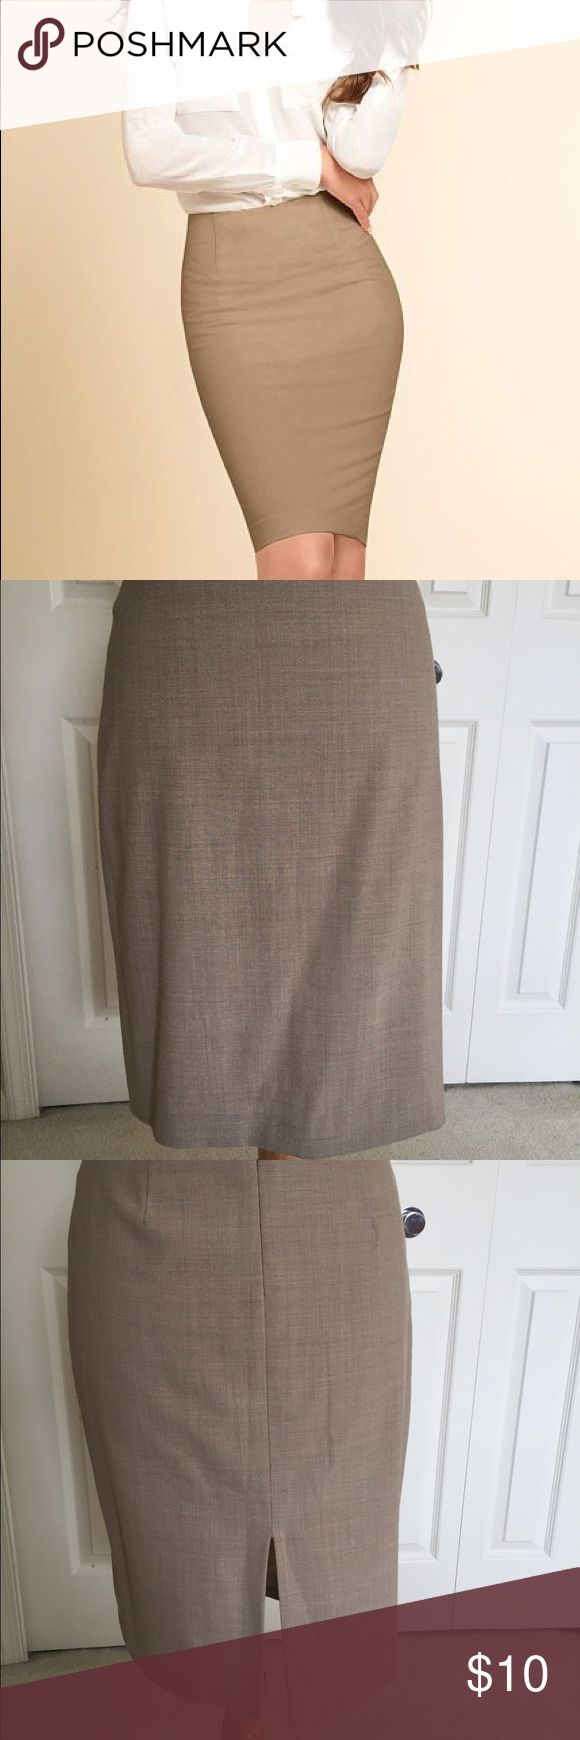 Body by Victoria beige pencil skirt This is a professional yet very sexy skirt great for the office and then out afterwards! It's beige body by Victoria- size 4 - 63% polyester, 33% viscose, 4% spandex. It falls right above the knee or just at the knee. It shows a bit of wear but is in good condition. Victoria's Secret Skirts Pencil